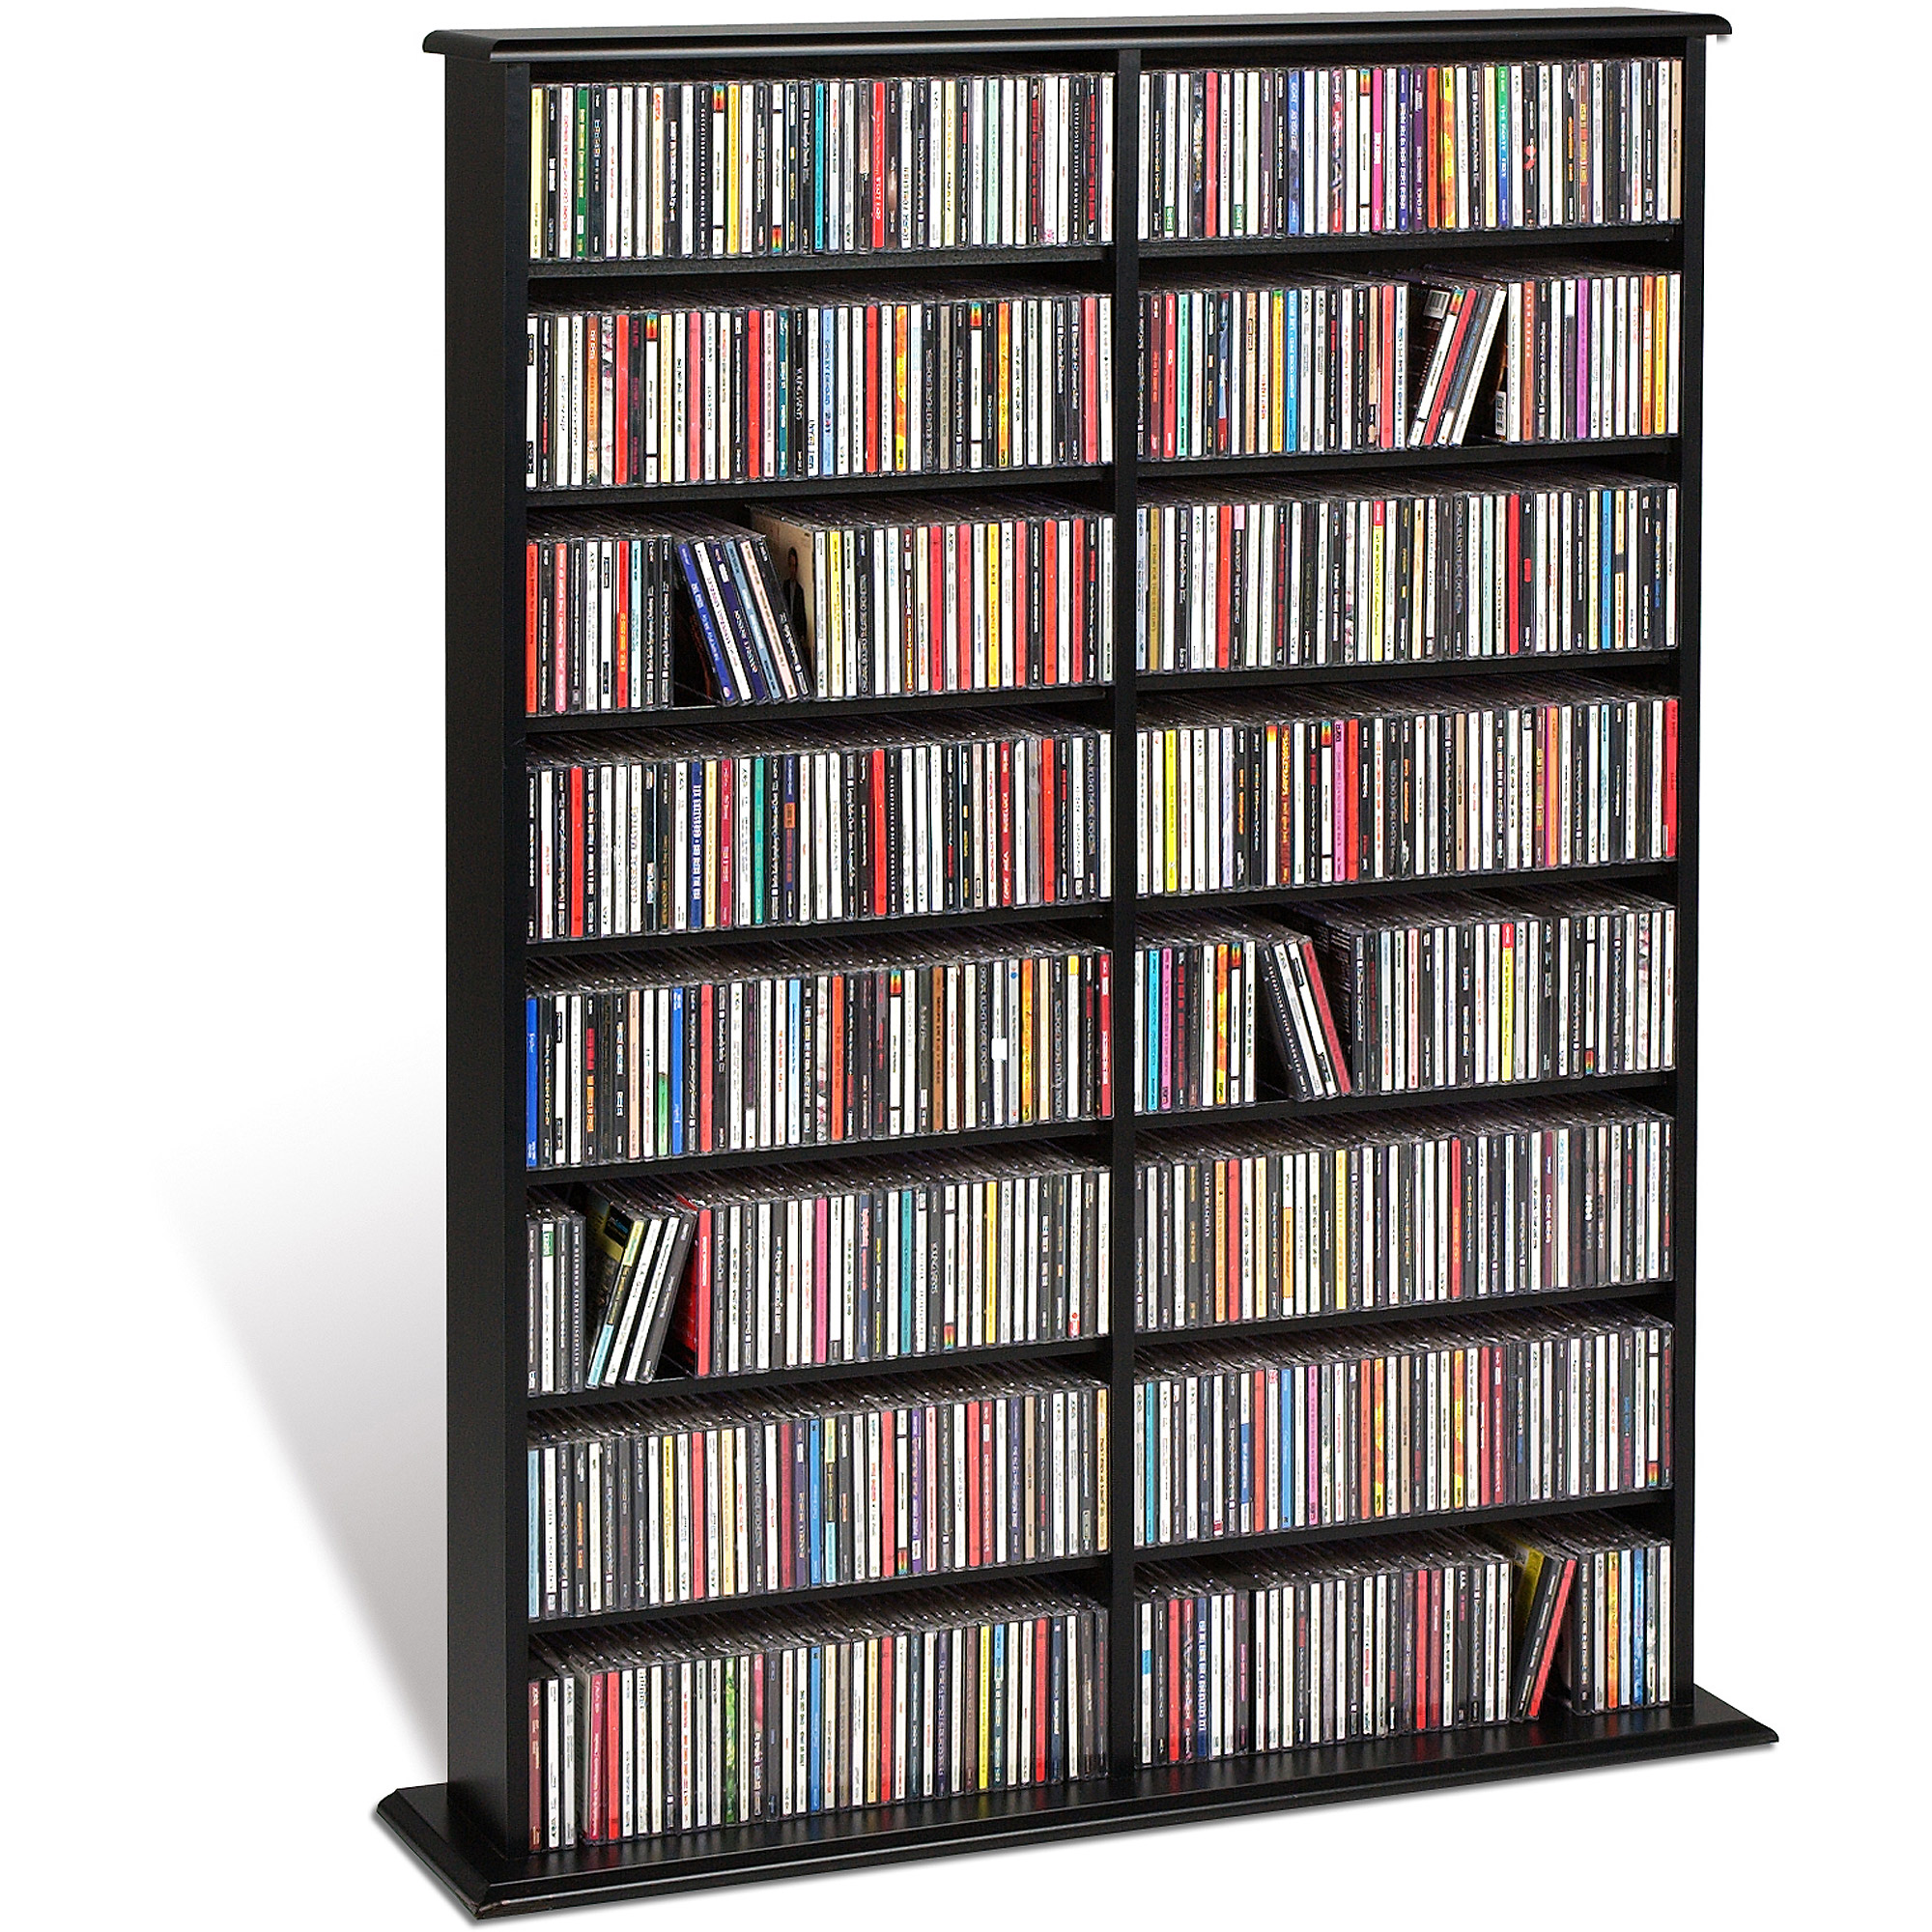 Stock photo; Picture 1 of 2 ...  sc 1 st  eBay & Prepac Black Double Width Wall Media (DVDCDGames) Storage Rack | eBay